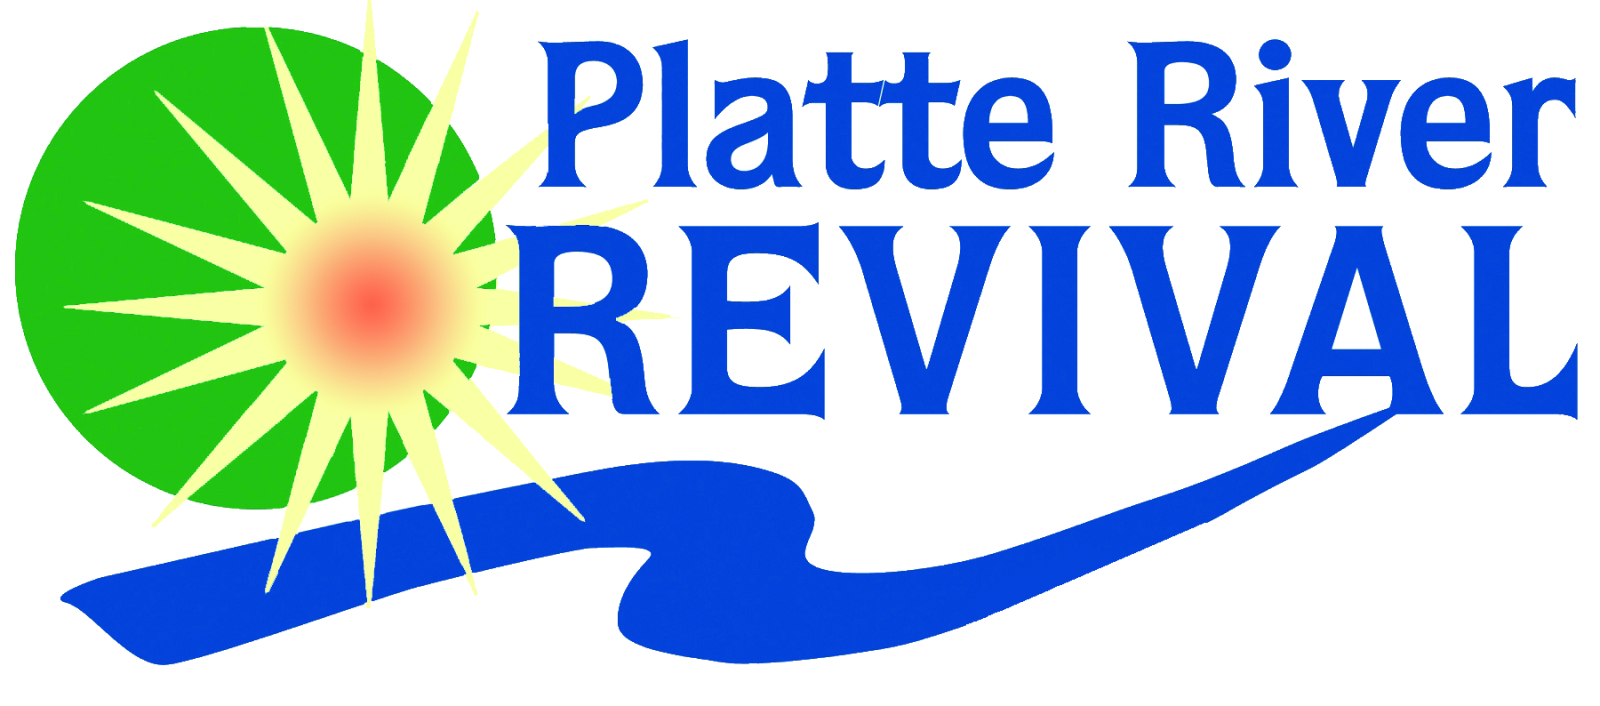 Platte River clipart #4, Download drawings